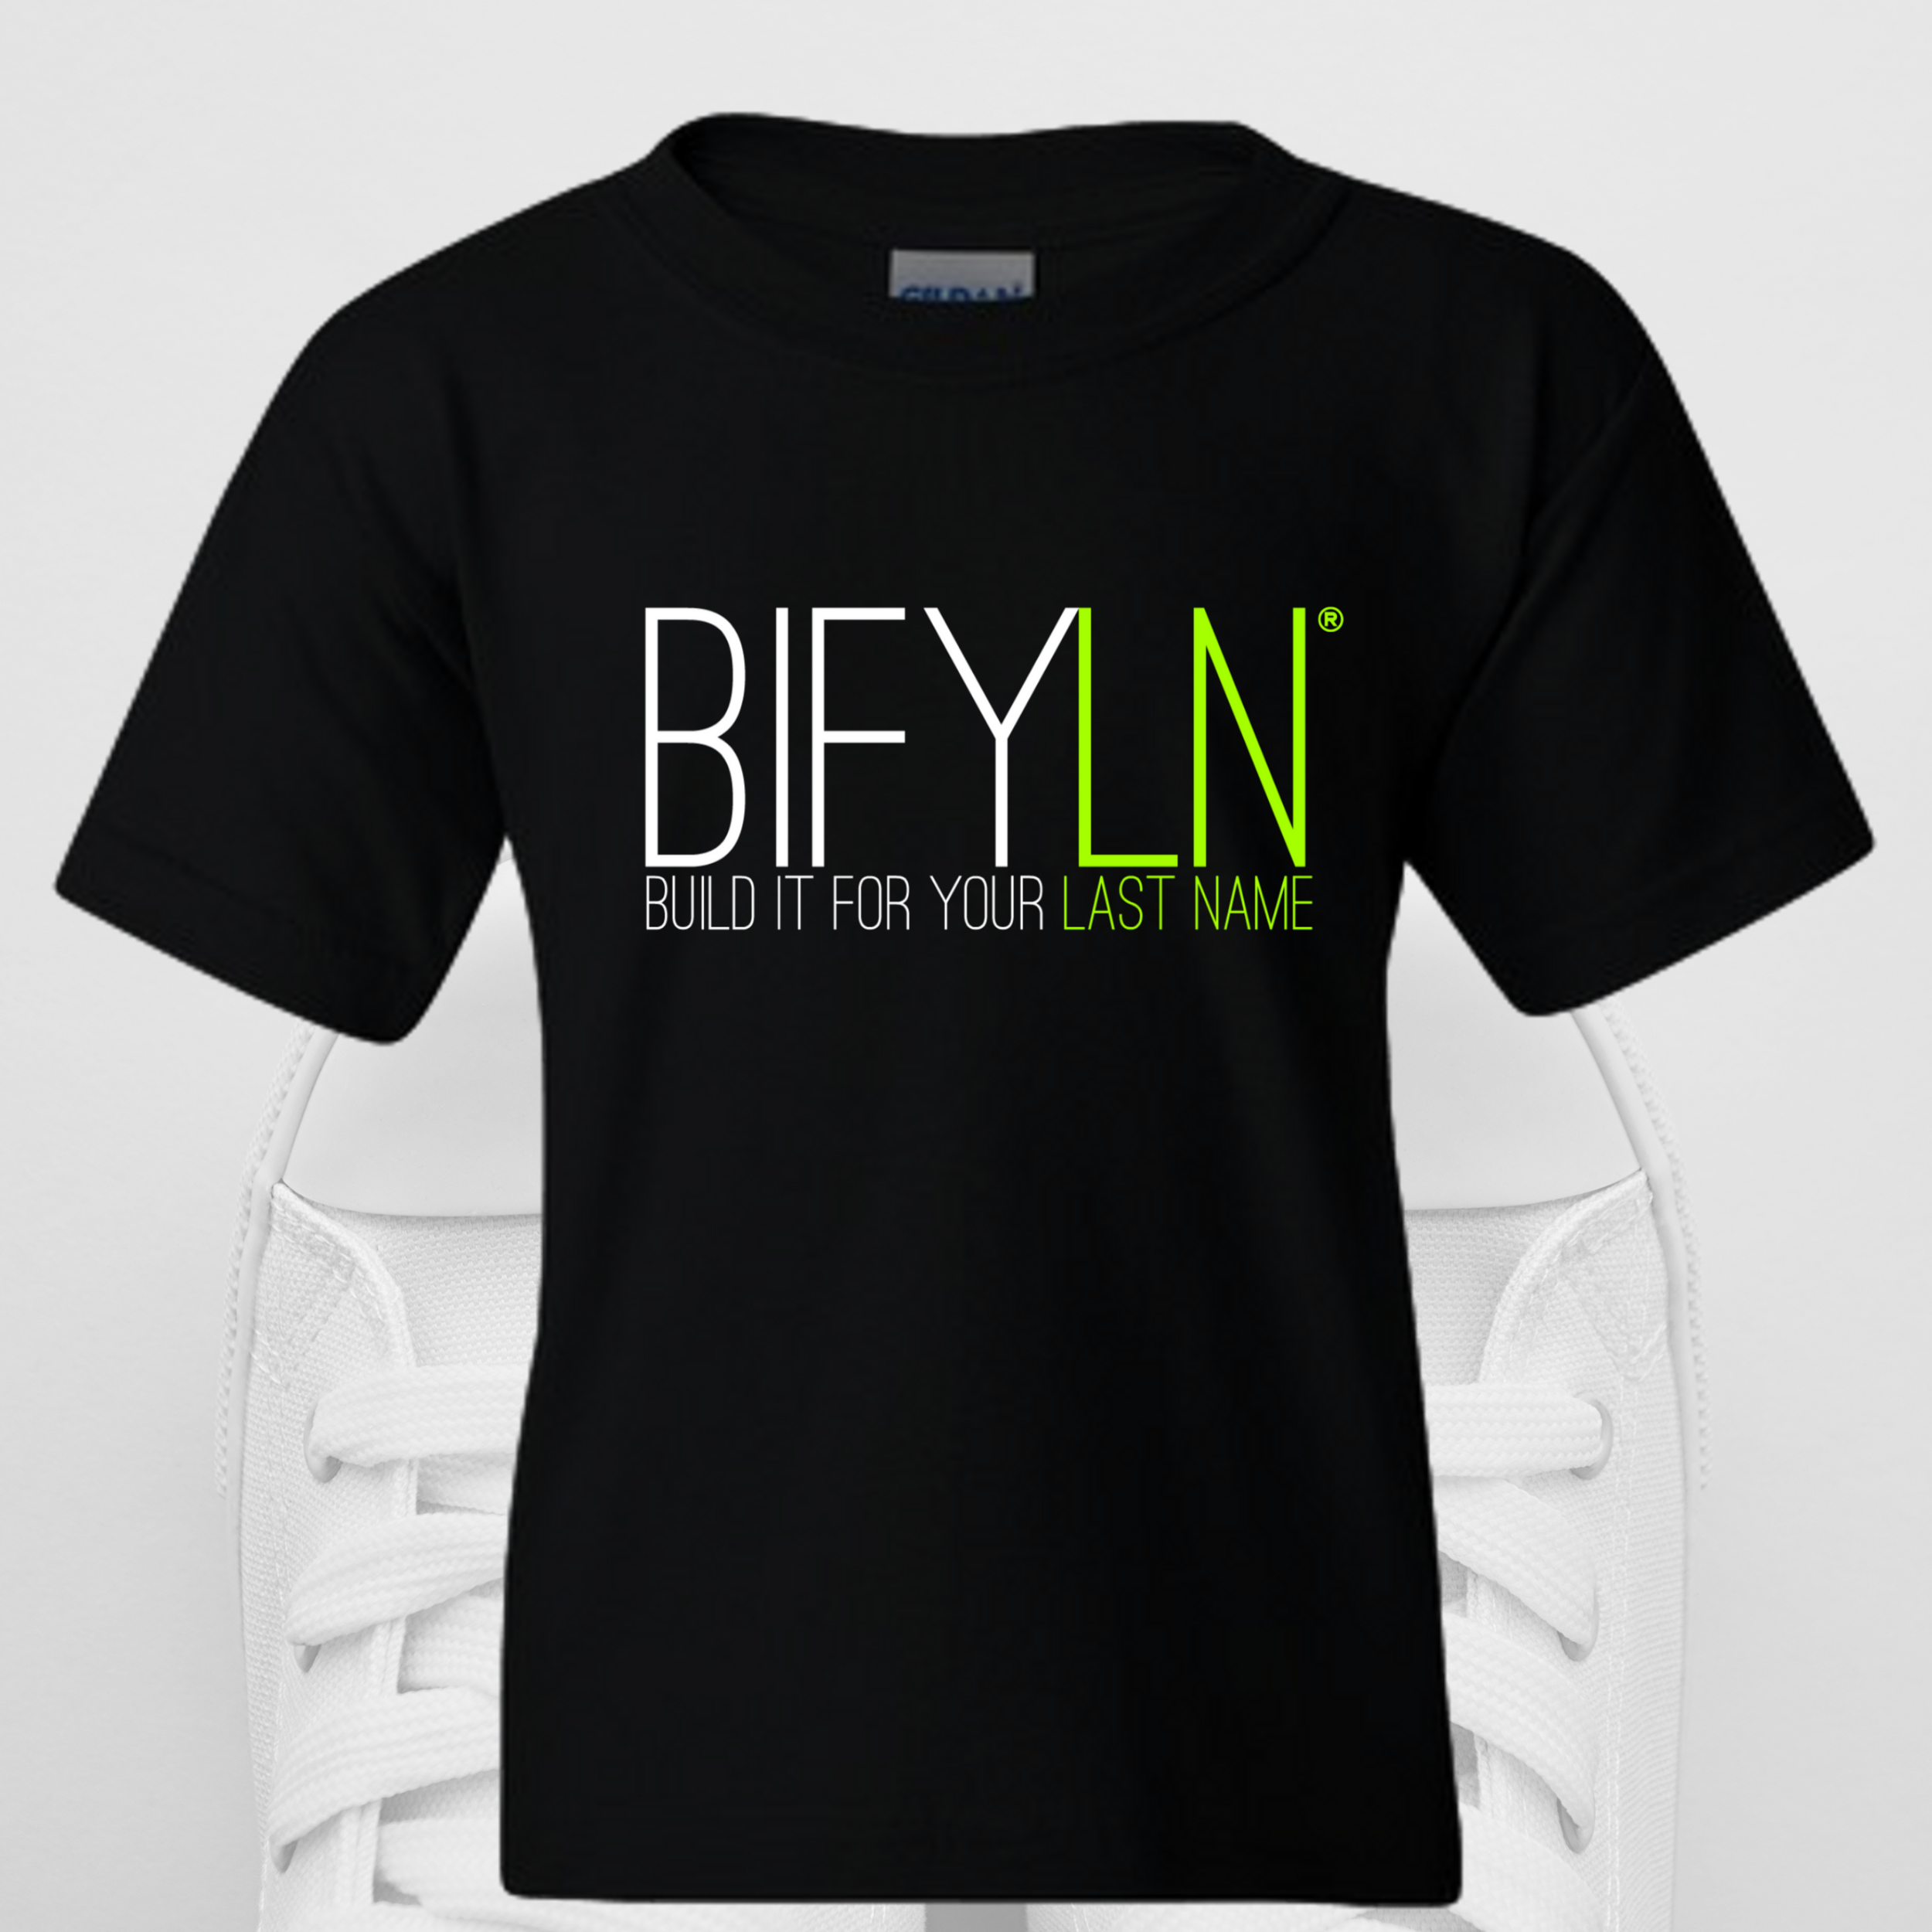 BIFYLN YOUTH TSHIRT